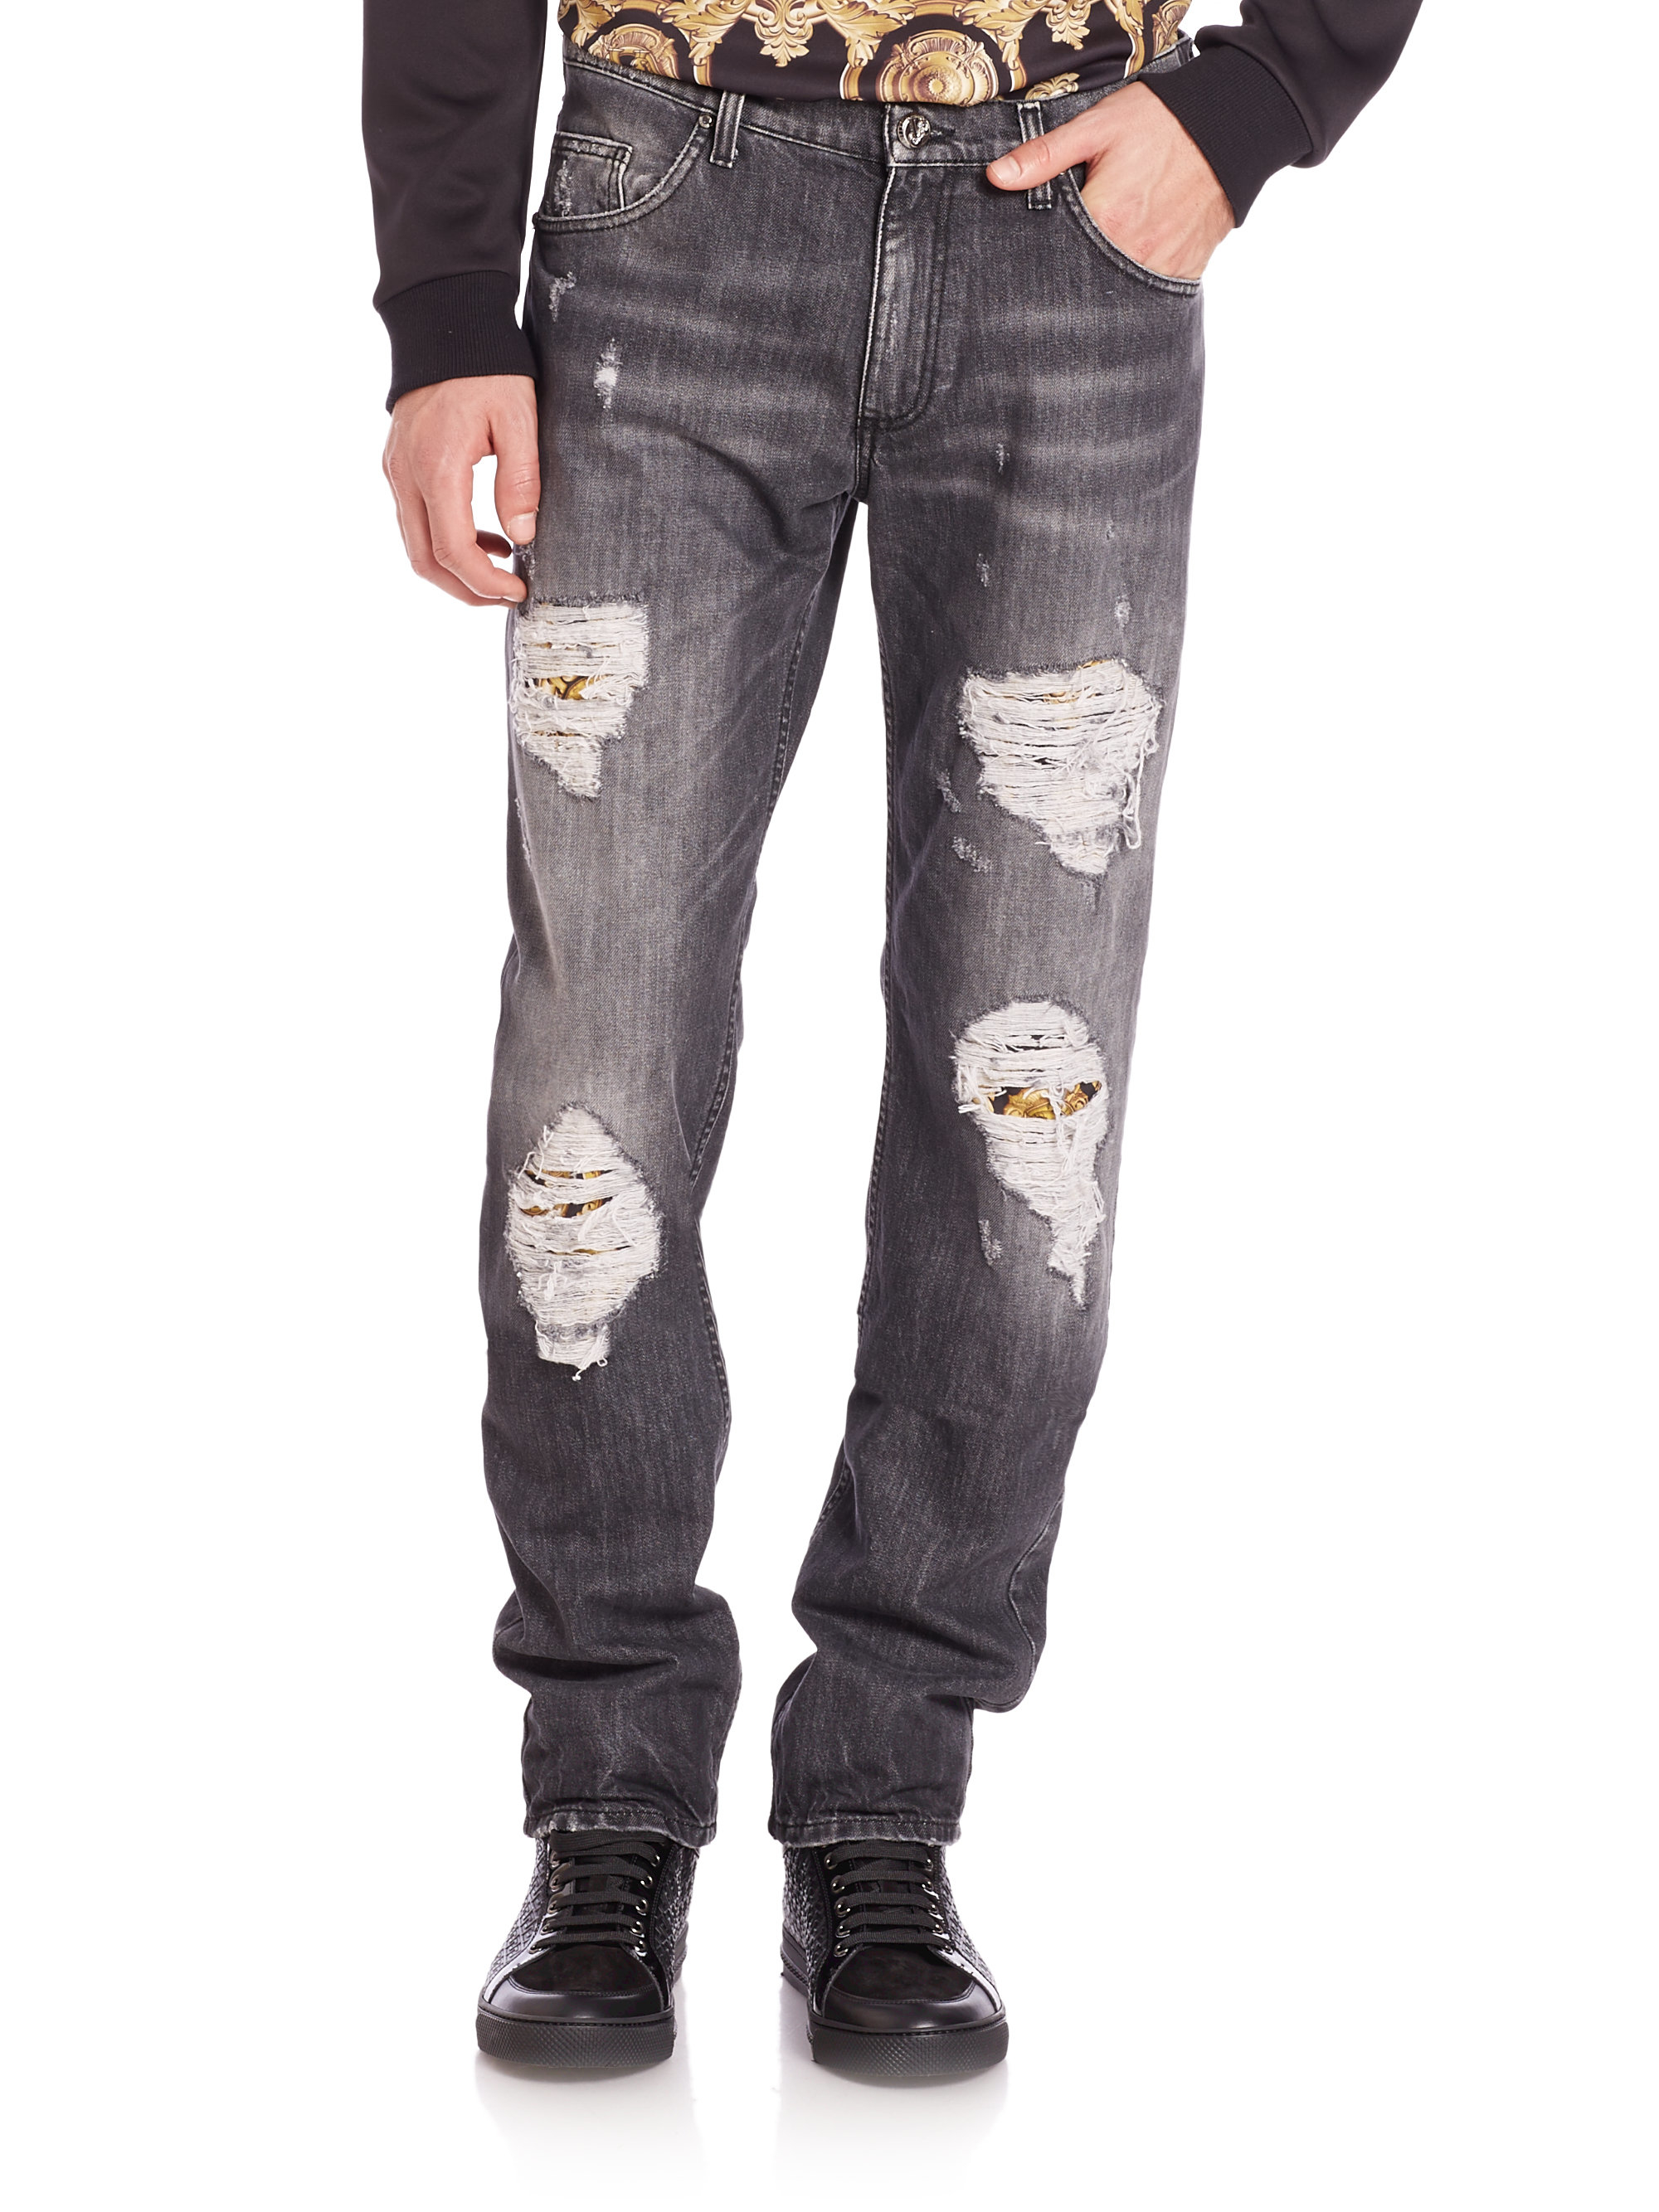 Lyst - Versace Jeans Distressed Straight-leg Jeans in ...